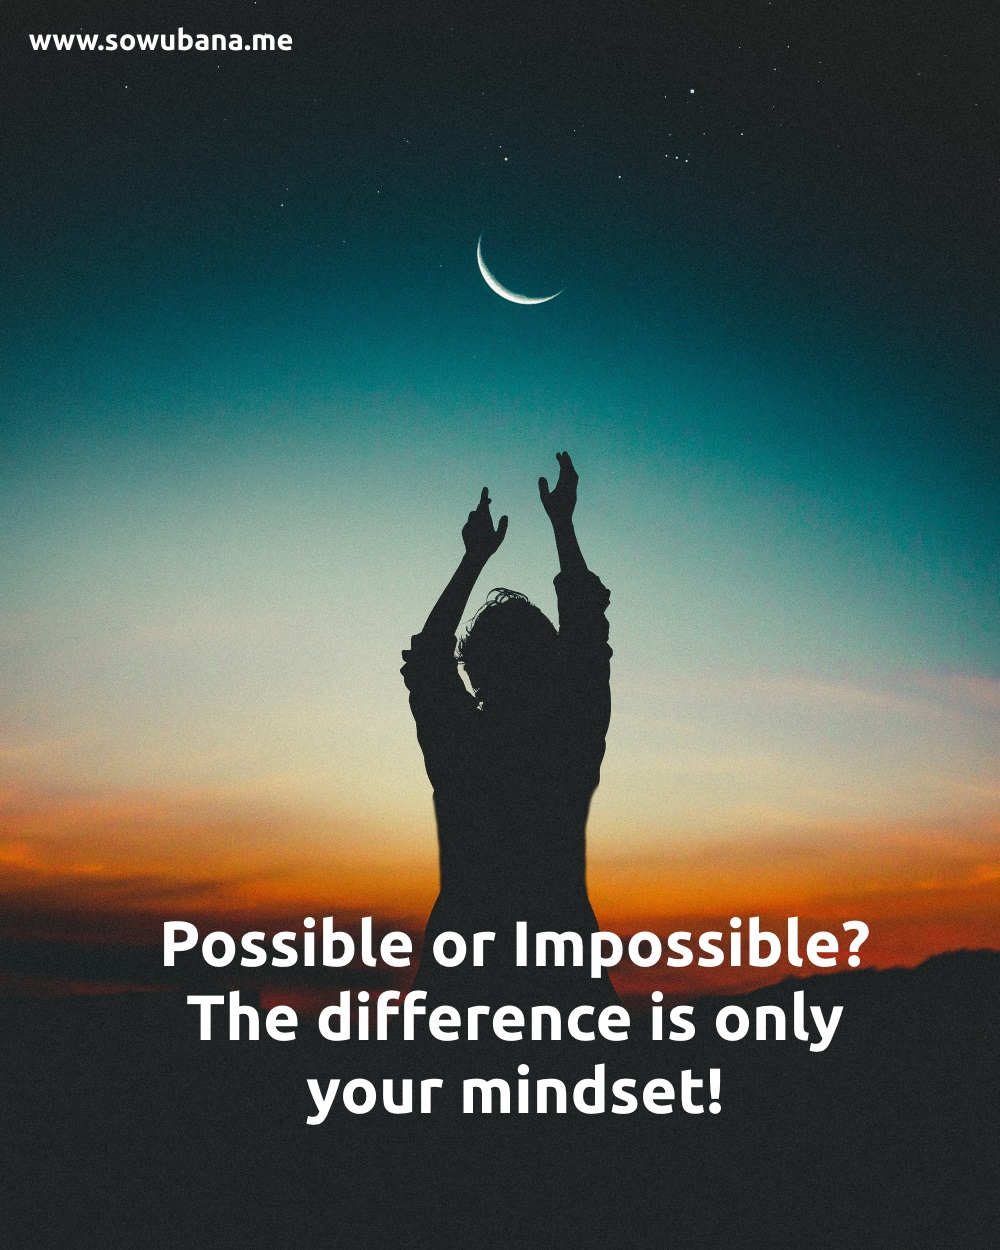 Possible or impossible? The difference is only your mindset.